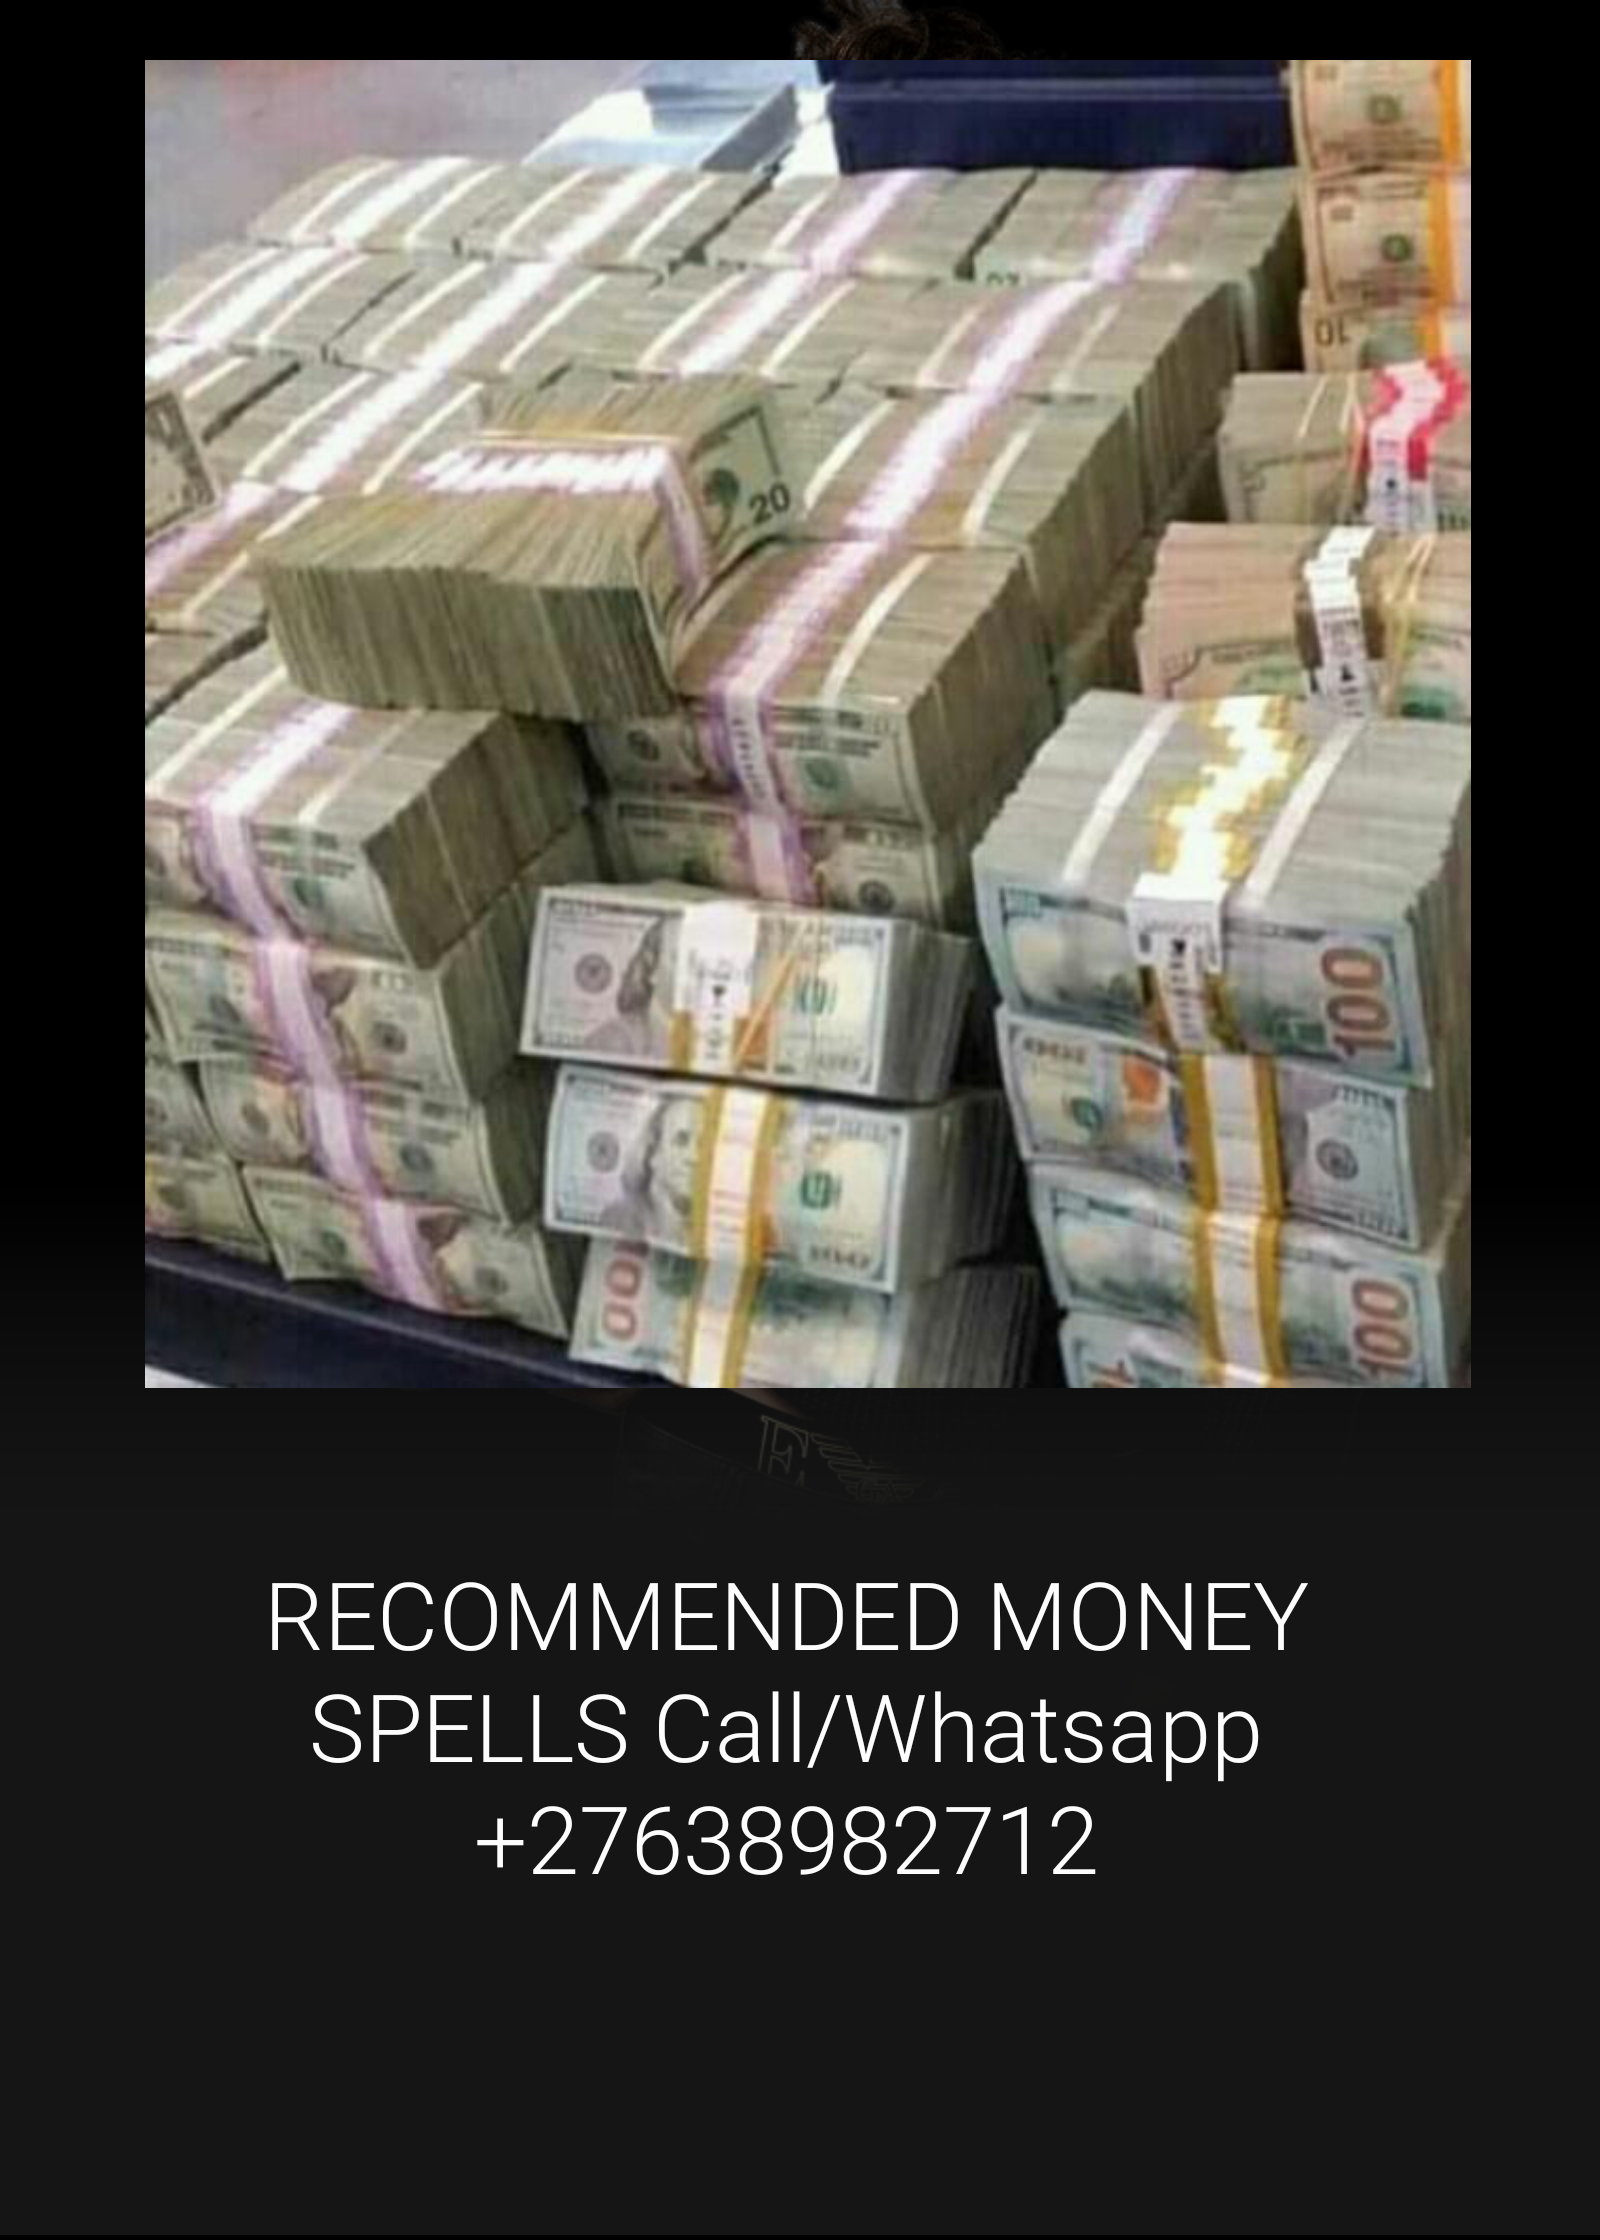 QUICK&FAST MONEY SPELLS Call/Whatsapp +27638982712 #moneyspells Do you want to have more money in your life? Maybe you need to manage your money better, or get a job promotion at work. Try one of my incredible money spells today.Money spells include; Lottery Spell Attract Money Spell Get Out Of Debt Spell Job Promotion Spell Increase Savings Spell Pay Rise Spell  Call/Whatsapp +27638982712 #moneyspells QUICK&FAST MONEY SPELLS Call/Whatsapp +27638982712 #moneyspells Do you want to have more money #moneyspells